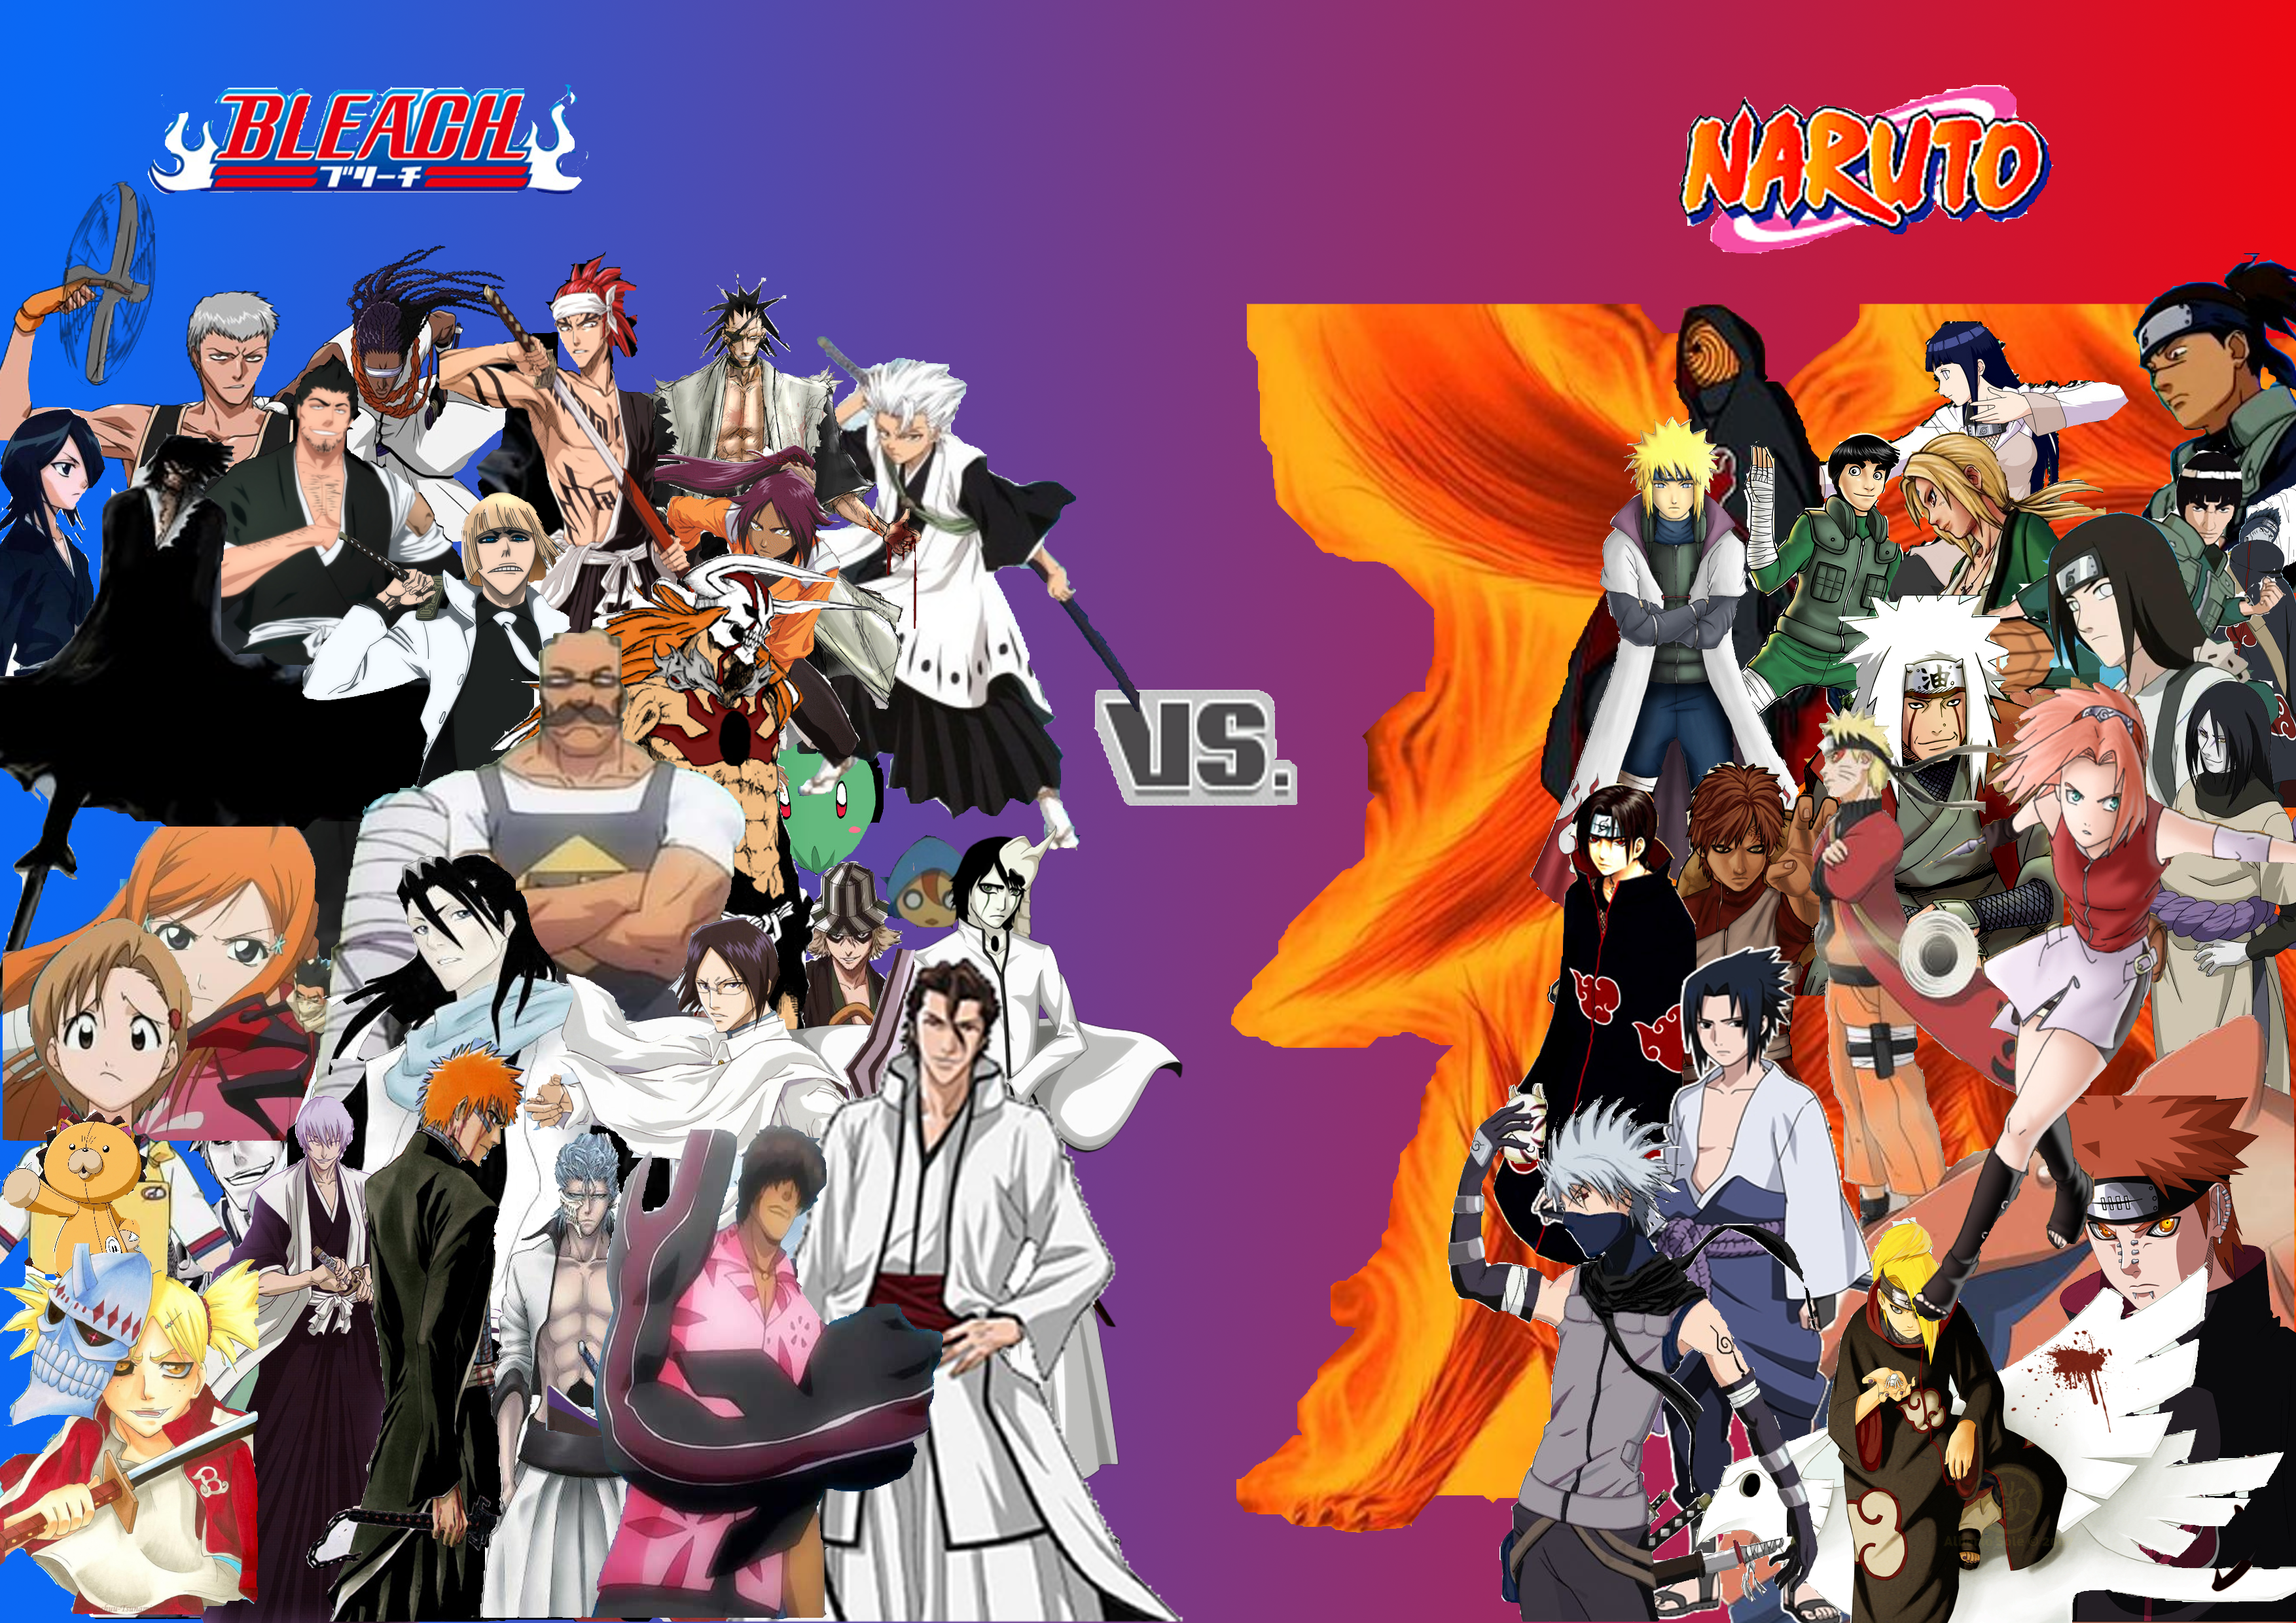 Naruto Collage By AzureKensei Bleach Vs. Naruto Collage By AzureKensei